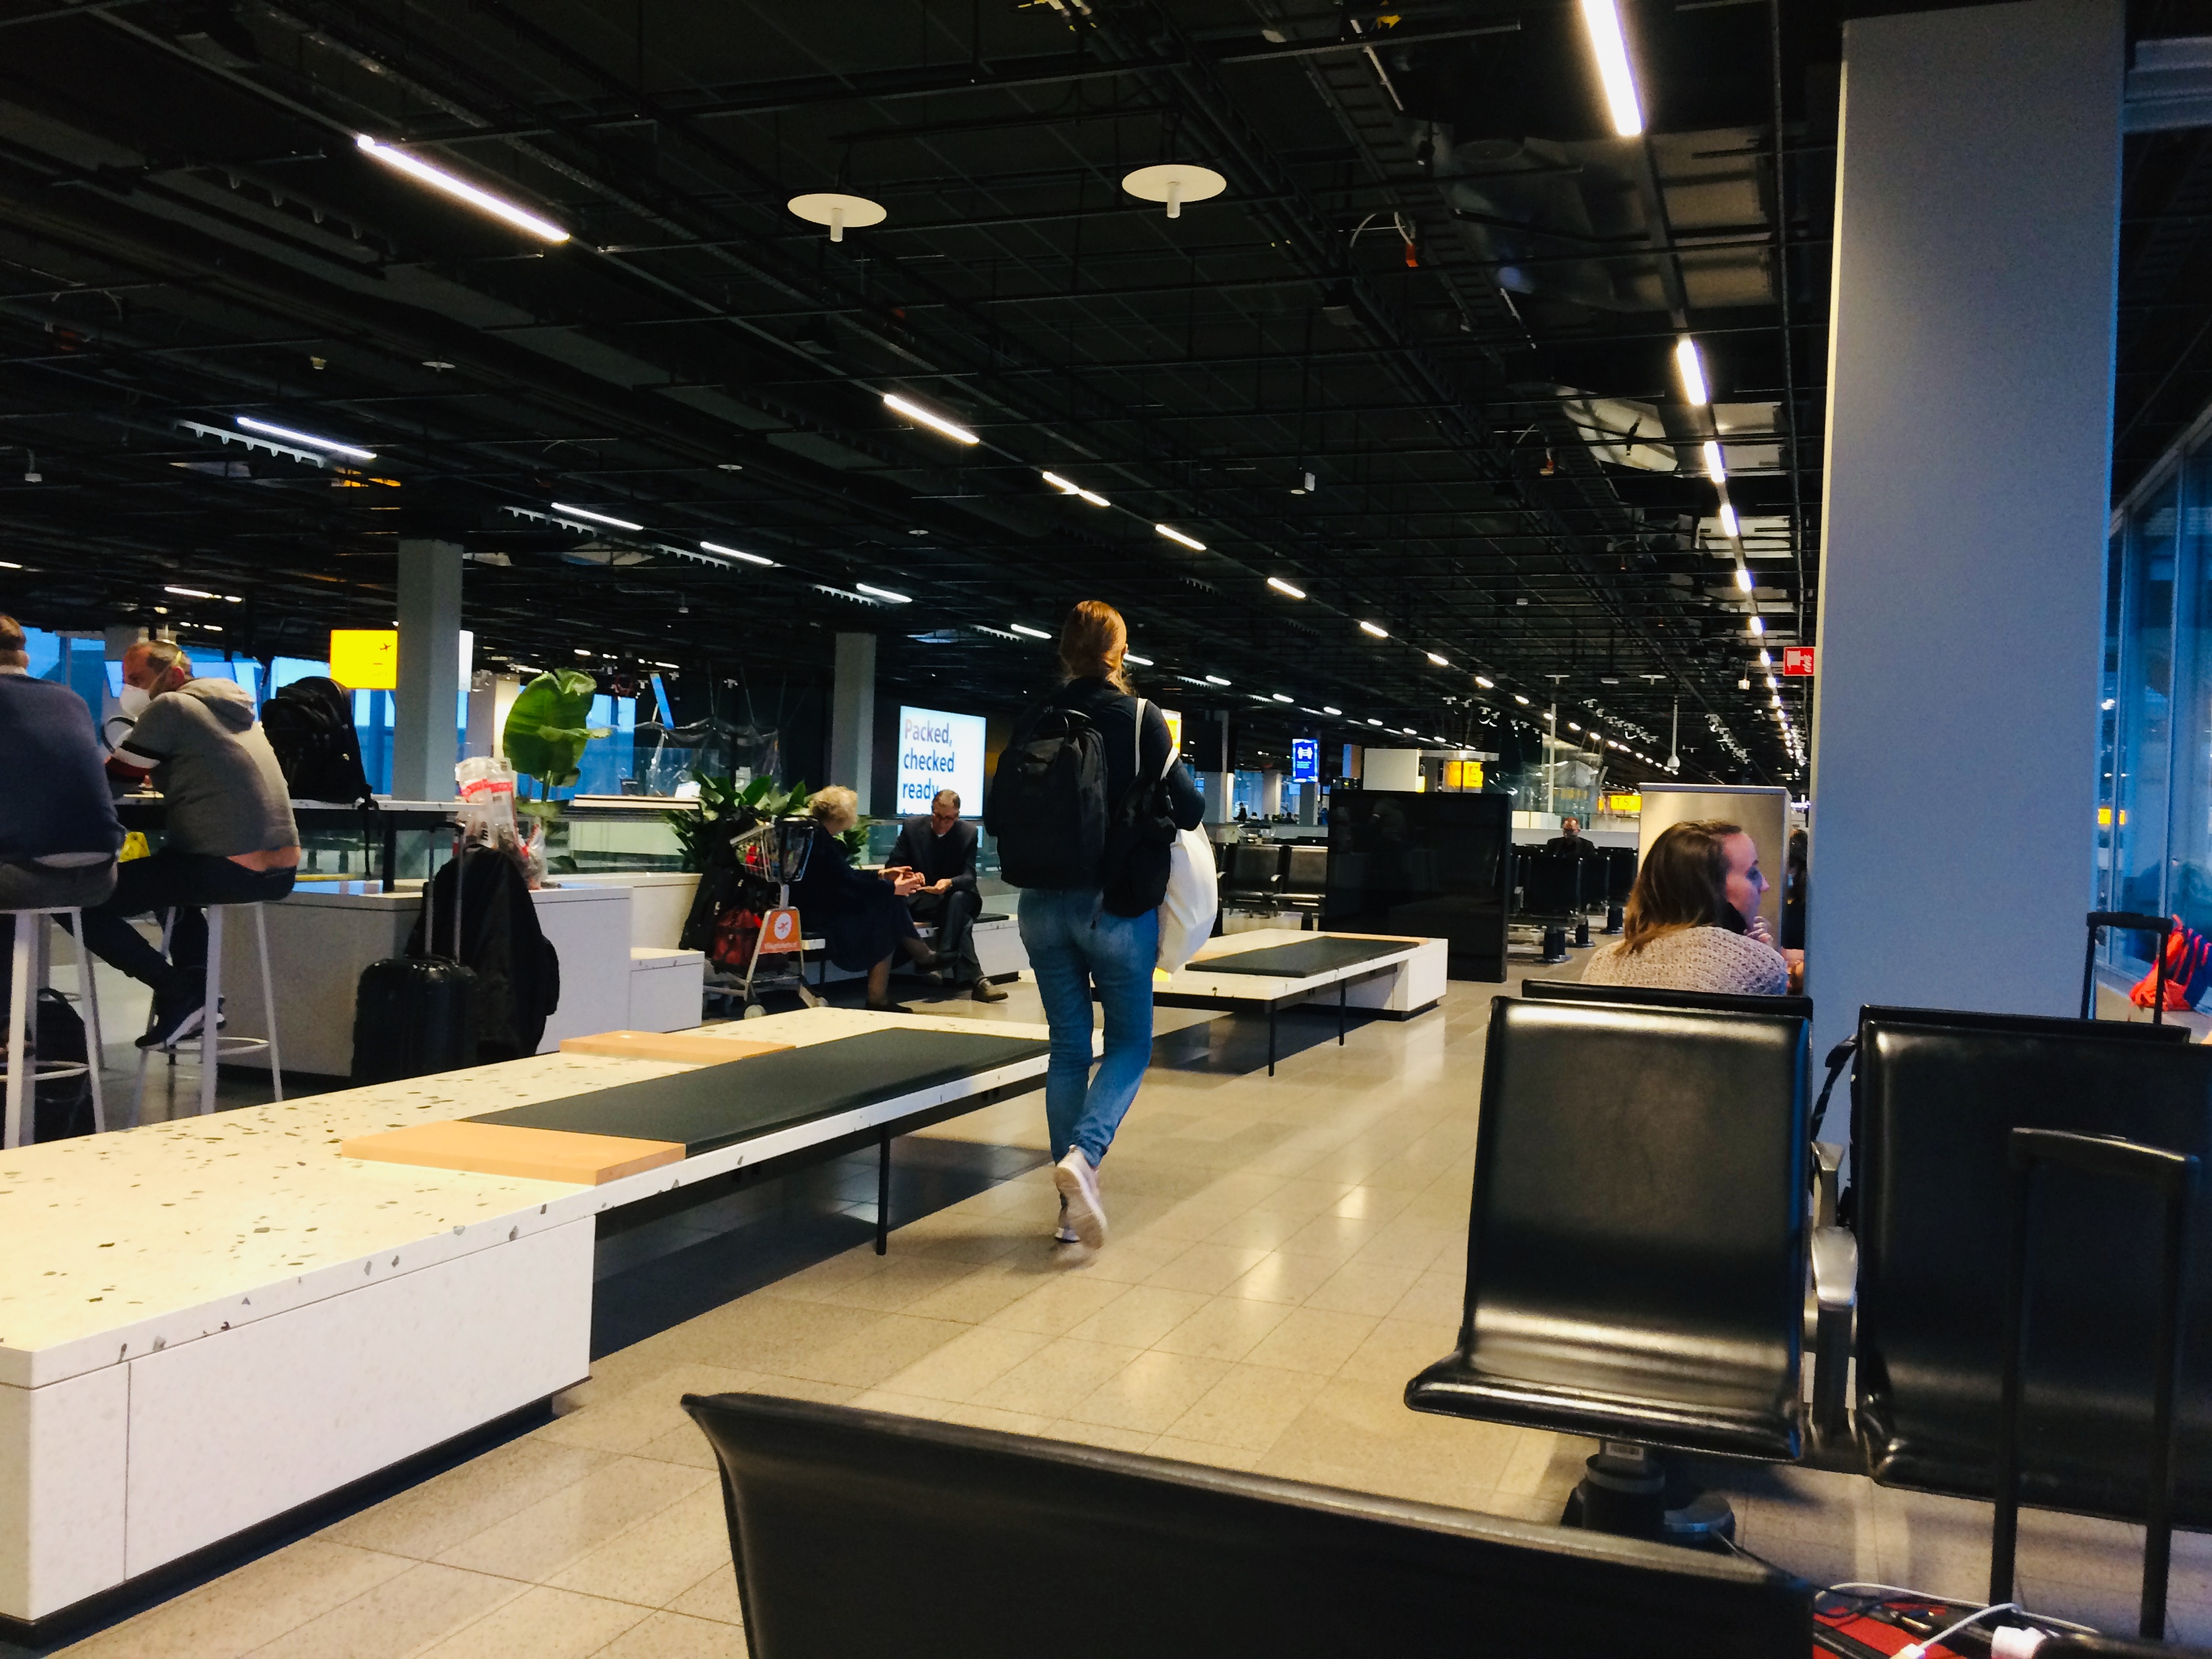 Heading to Tanzania: Waiting at the gate in Schiphol